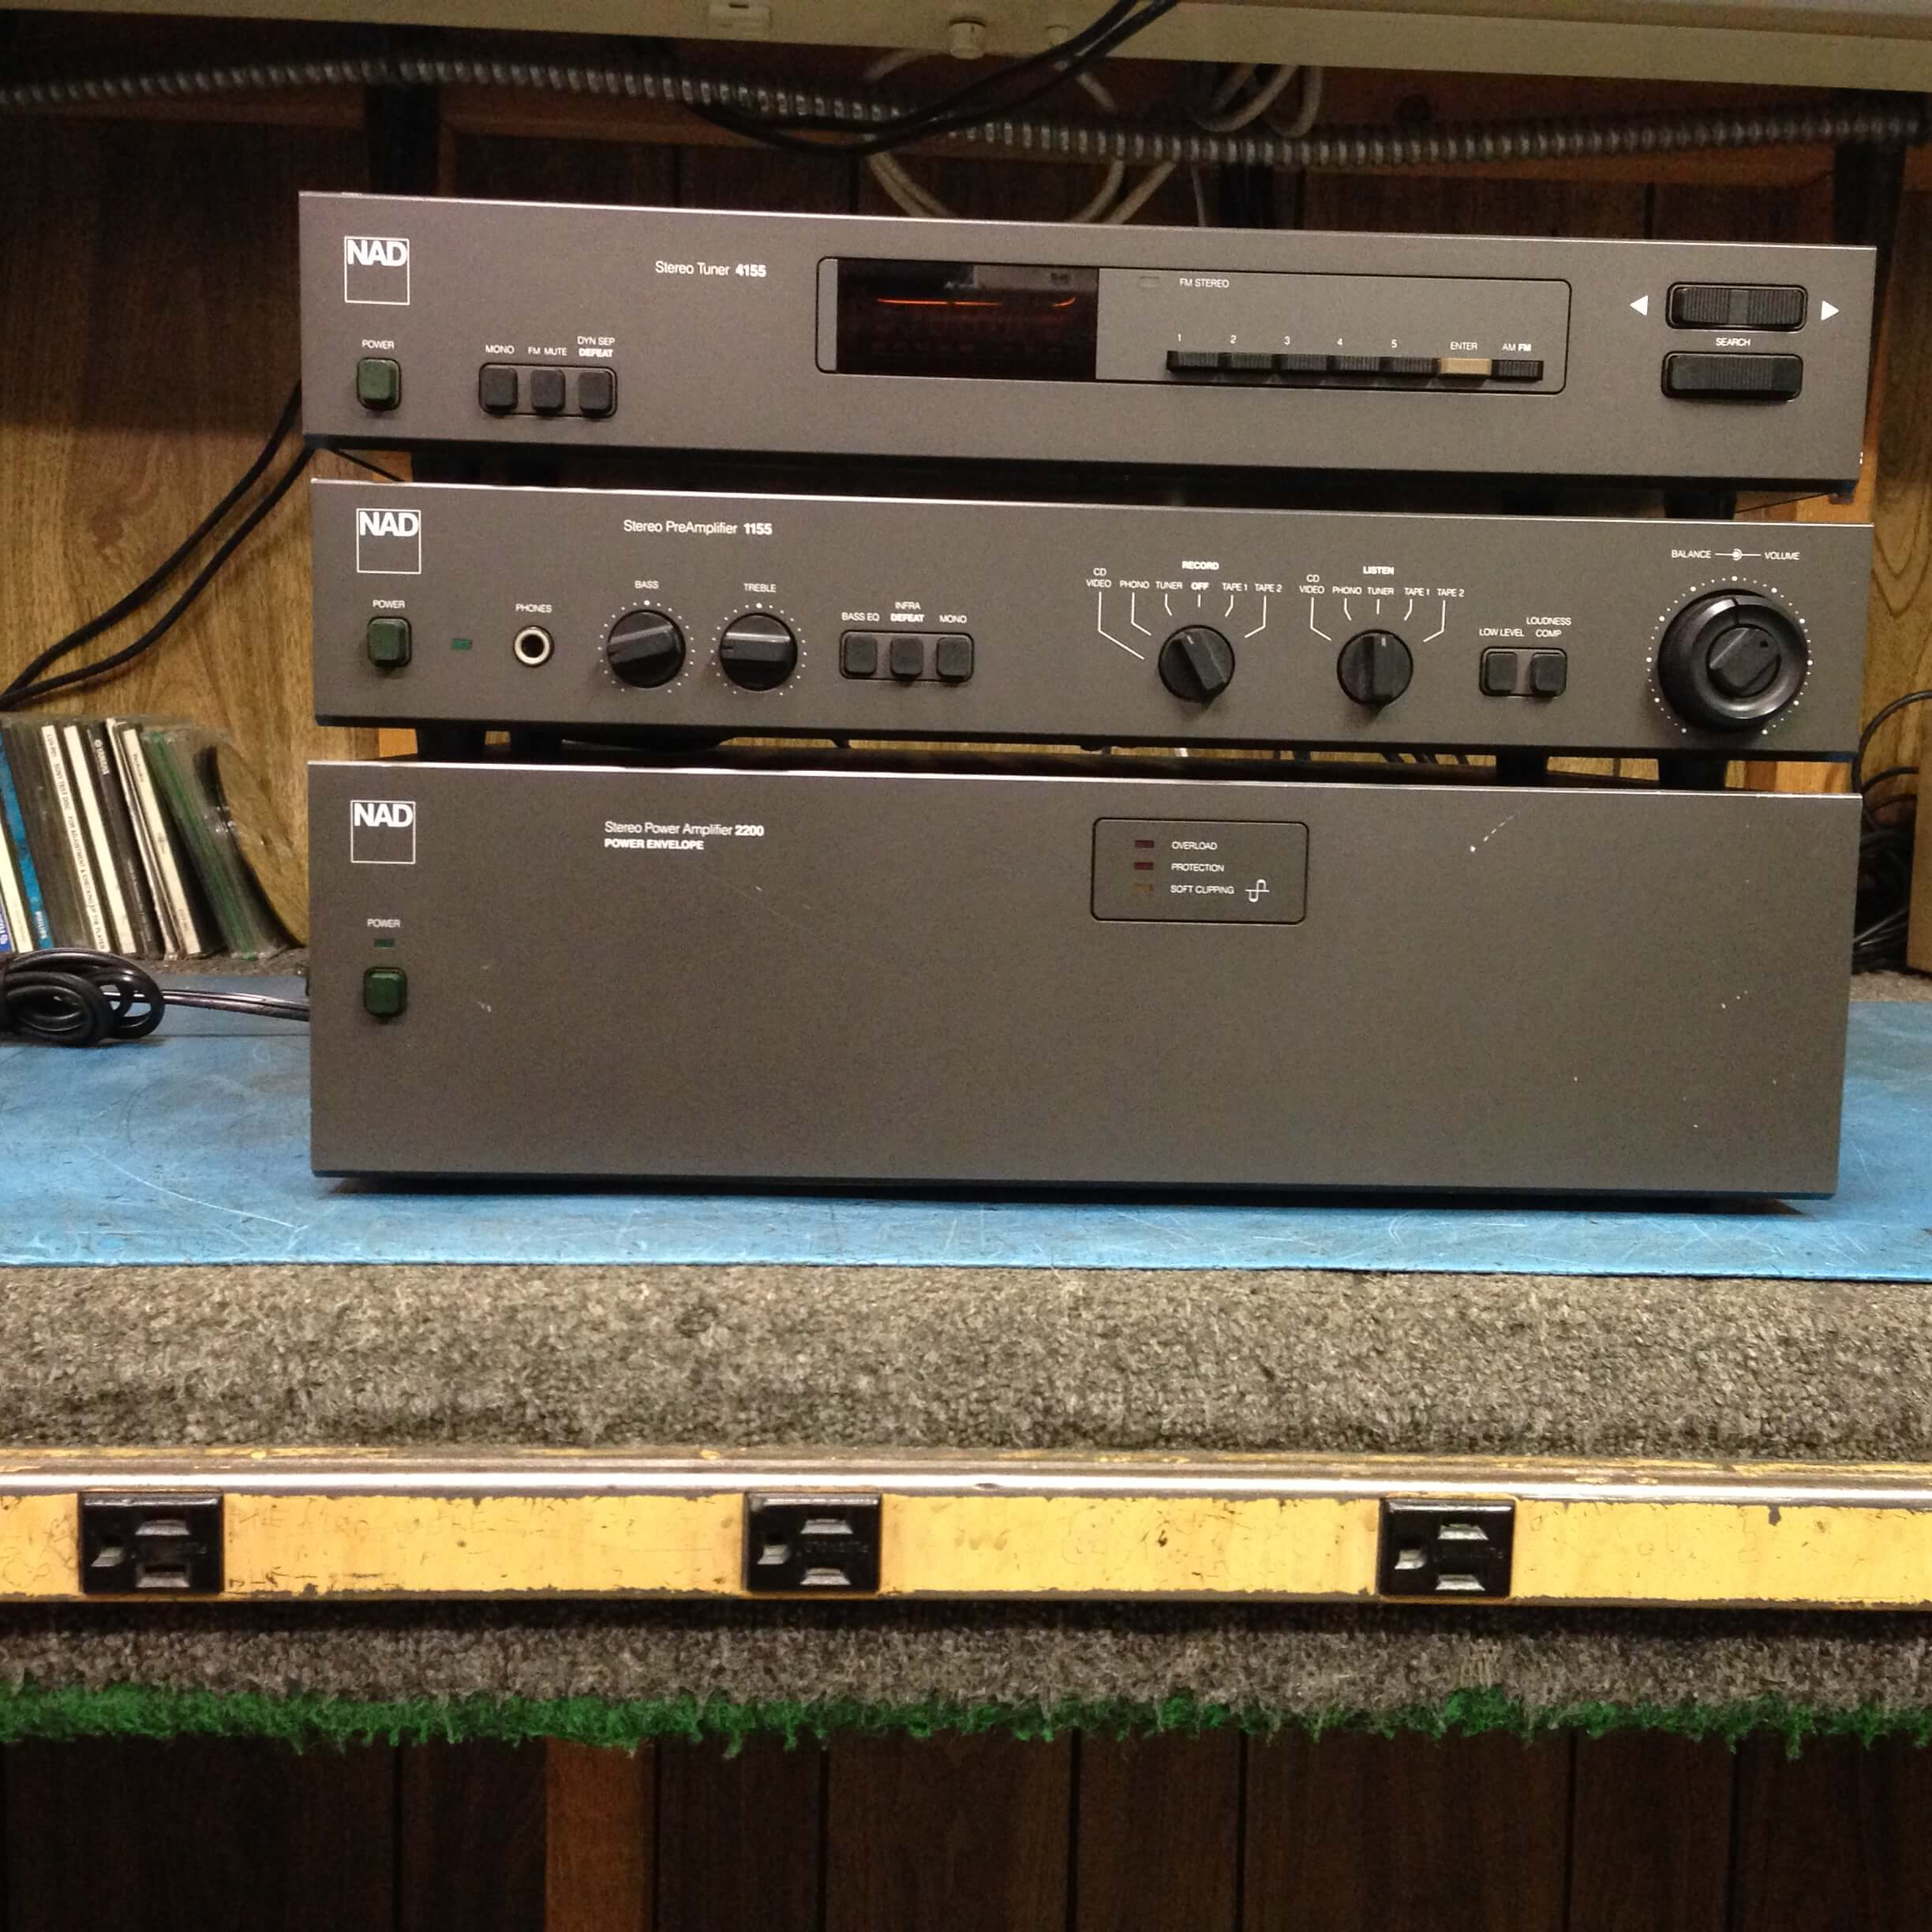 NAD Stereo System (4155 tuner, 1155 preamplifier, 2200 amplifier)